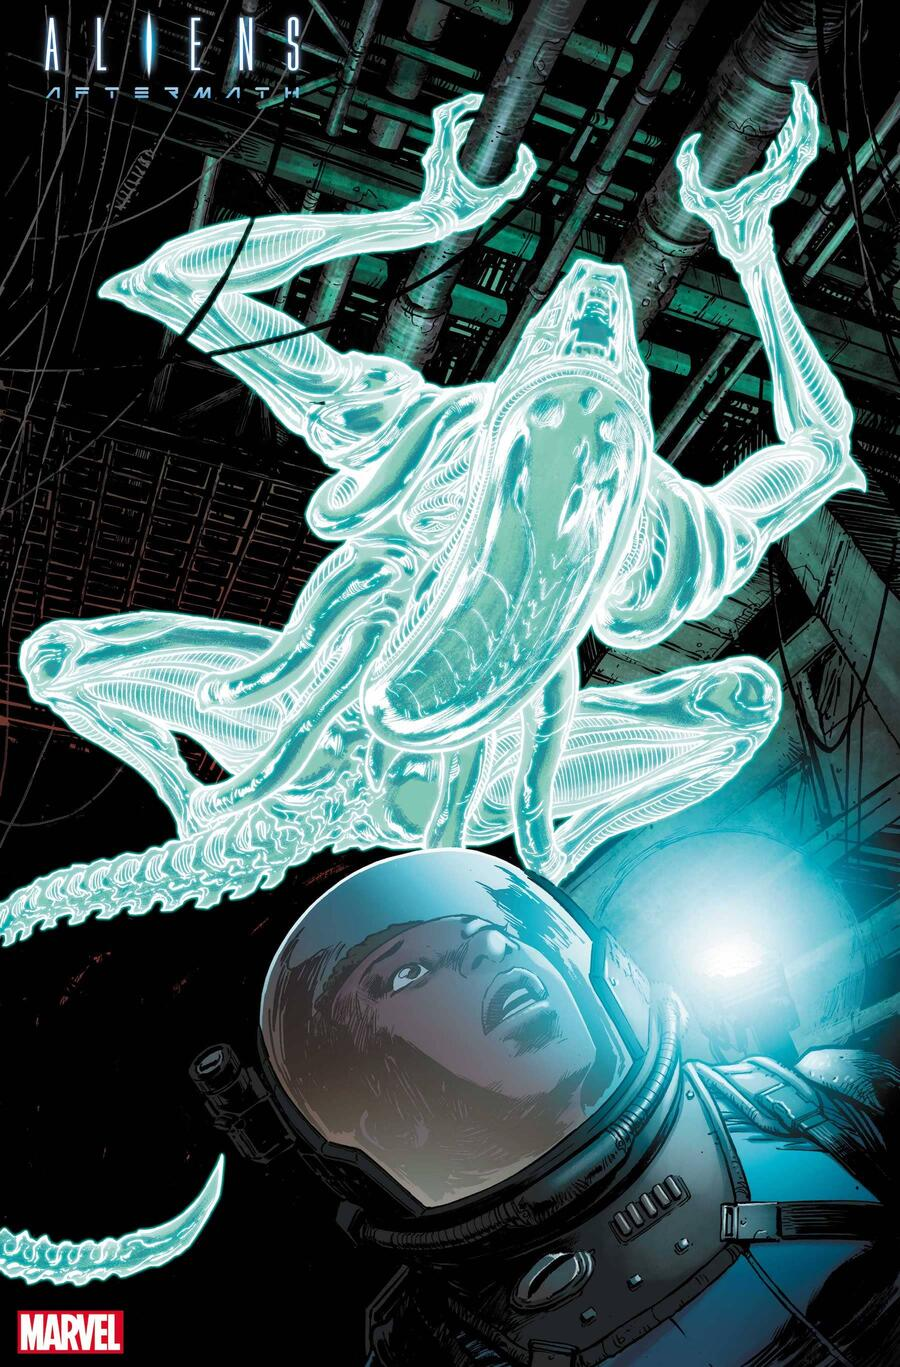 ALIENS: AFTERMATH #1 preview art byDave Wachterwith colors by Chris Sotomayor